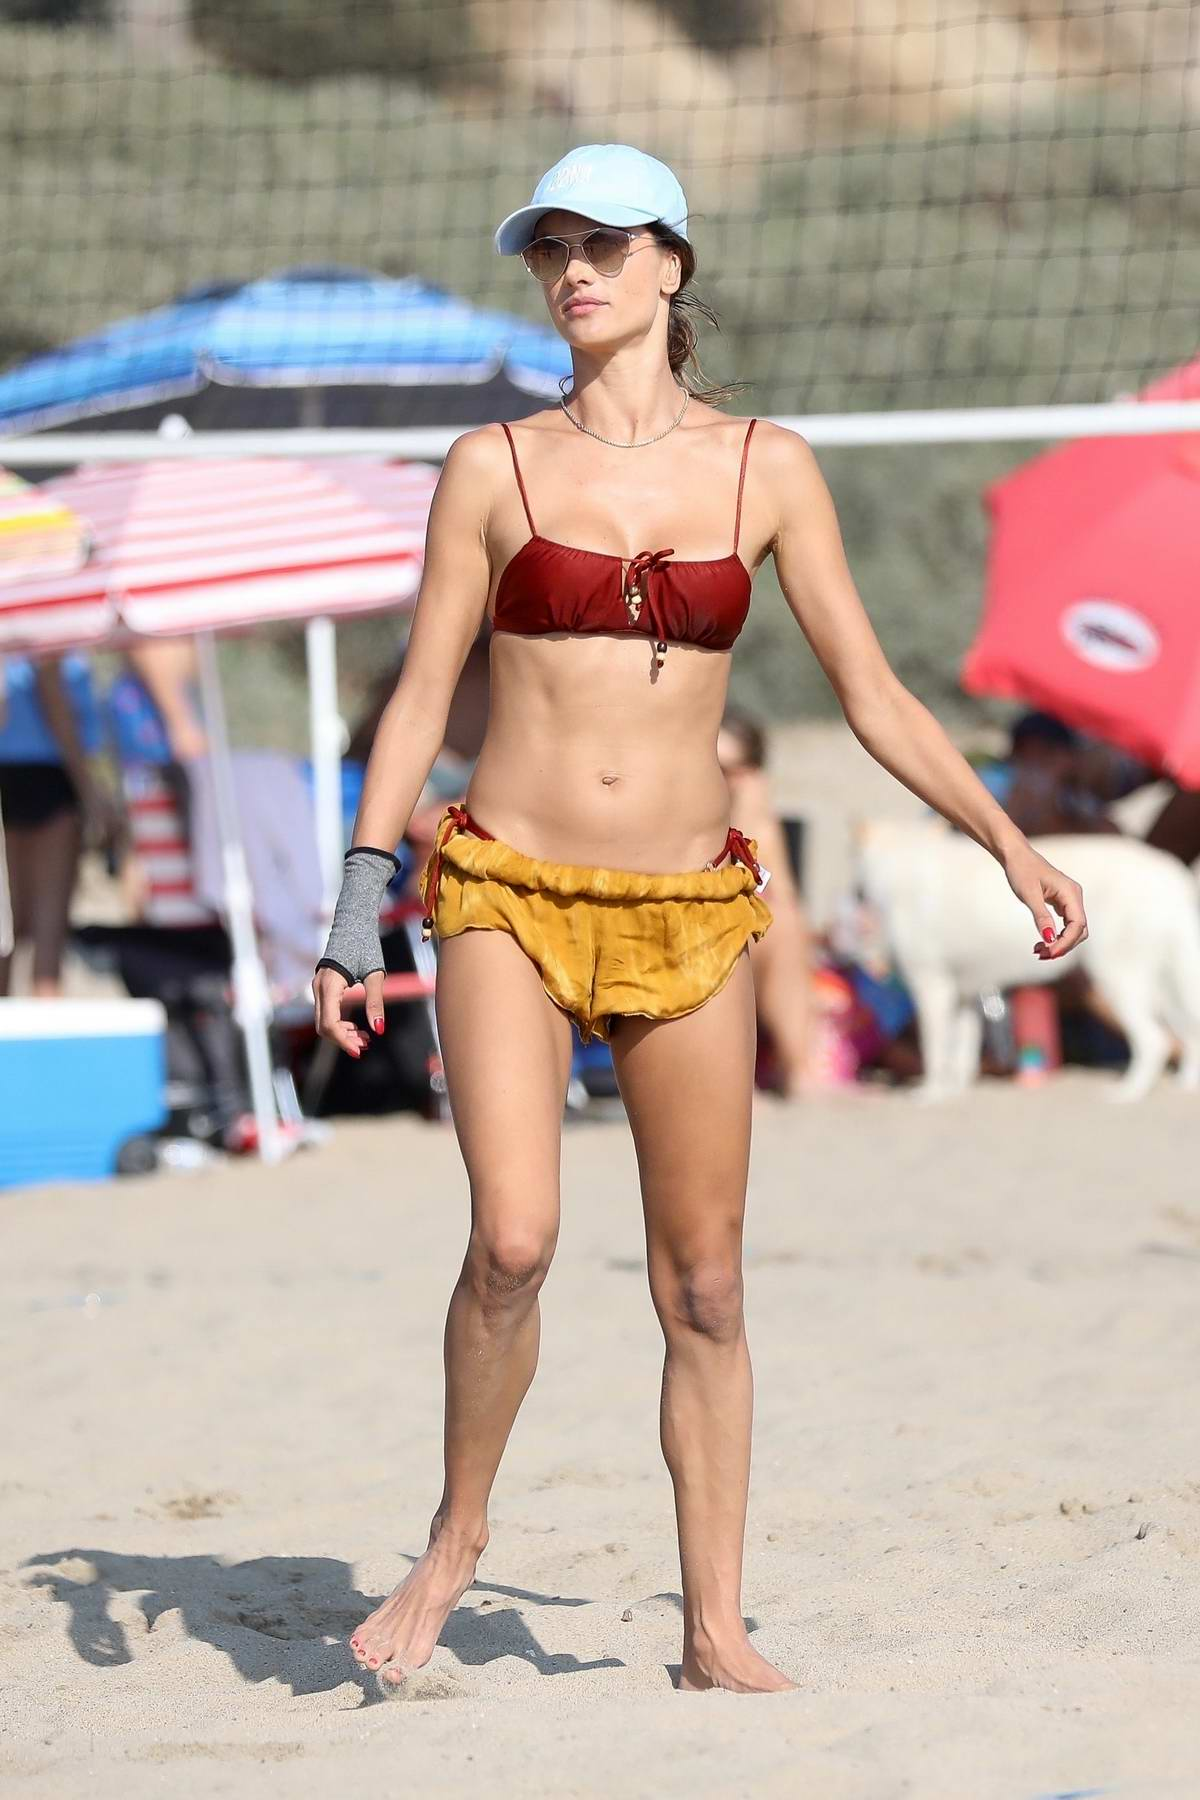 Alessandra Ambrosio enjoys another day of beach volleyball with friends in Santa Monica, California